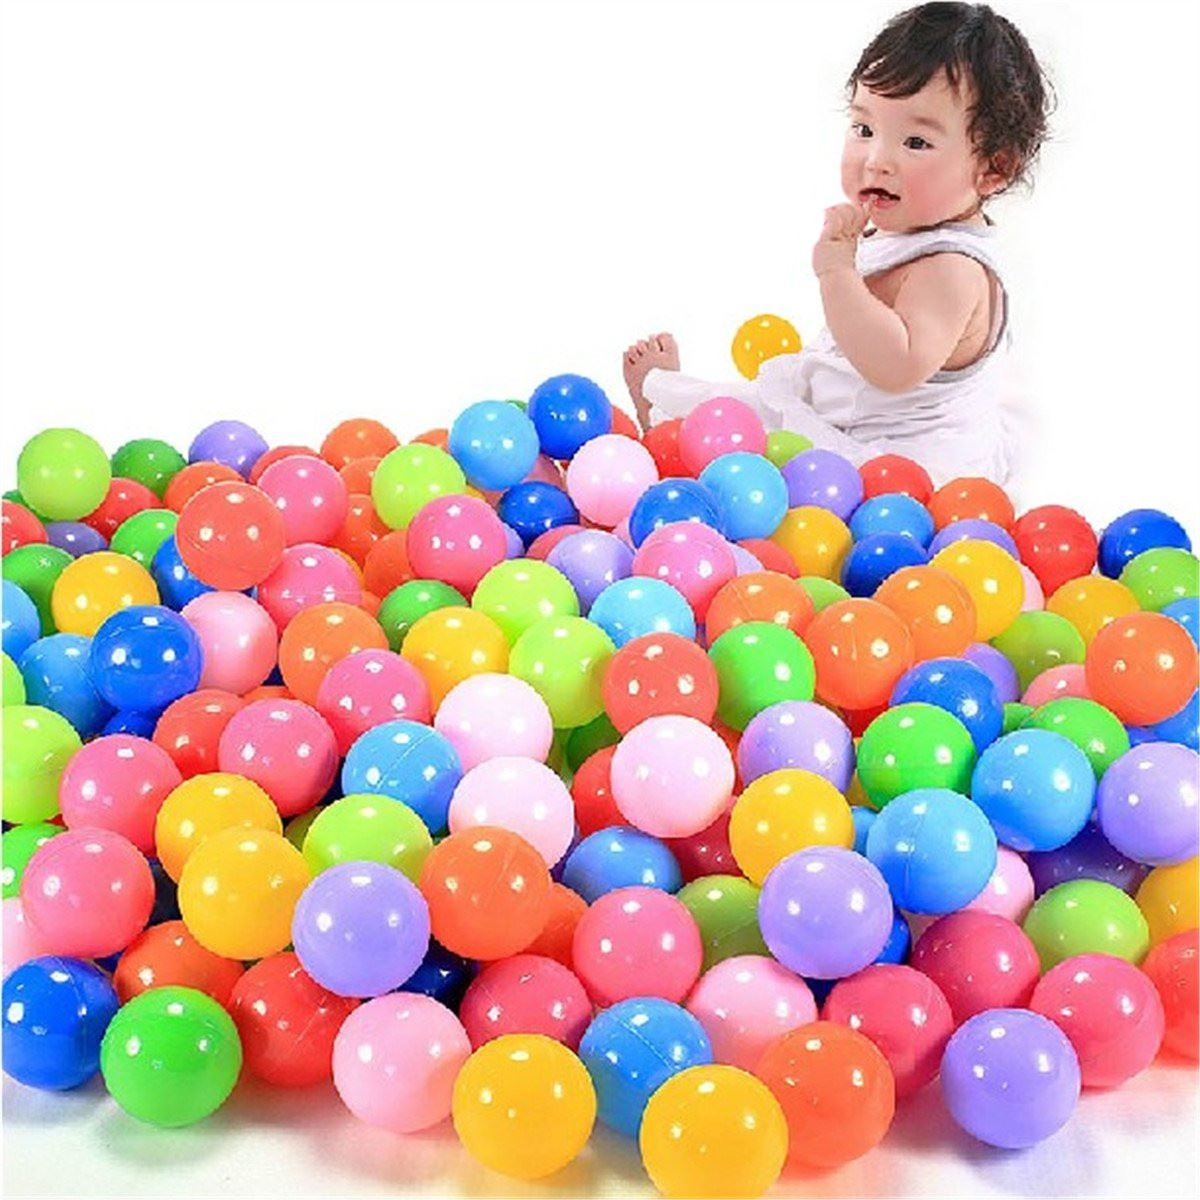 200pcs/set 40mm Secure Colorful Ball Soft Plastic Ocean Ball Funny Baby Kid Swim Pit Toy Water Pool Ocean Wave Ball(China (Mainland))